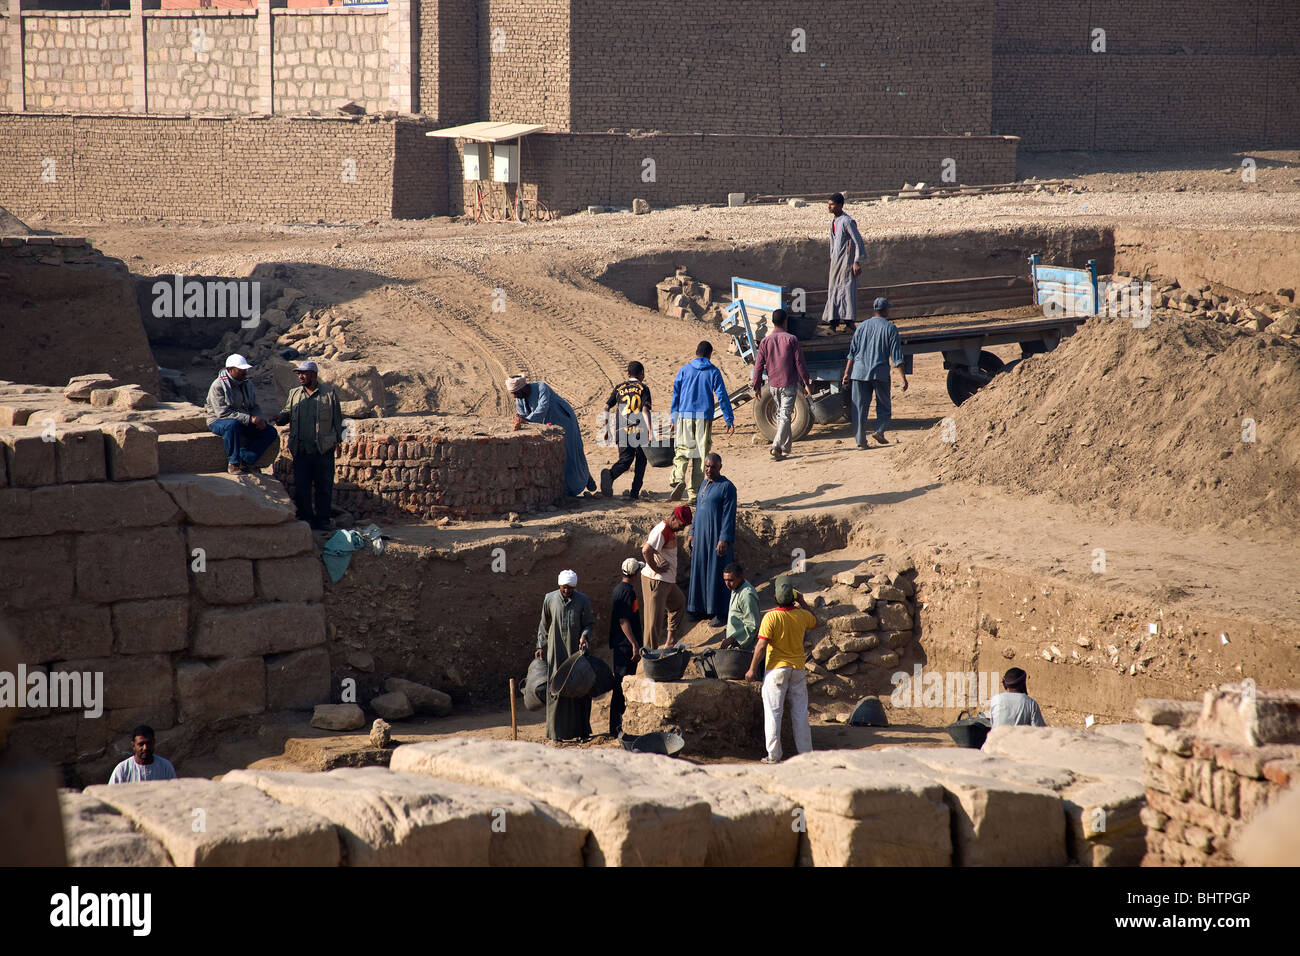 Archaeologists and workers excavating a site at Karnak Temple. - Stock Image